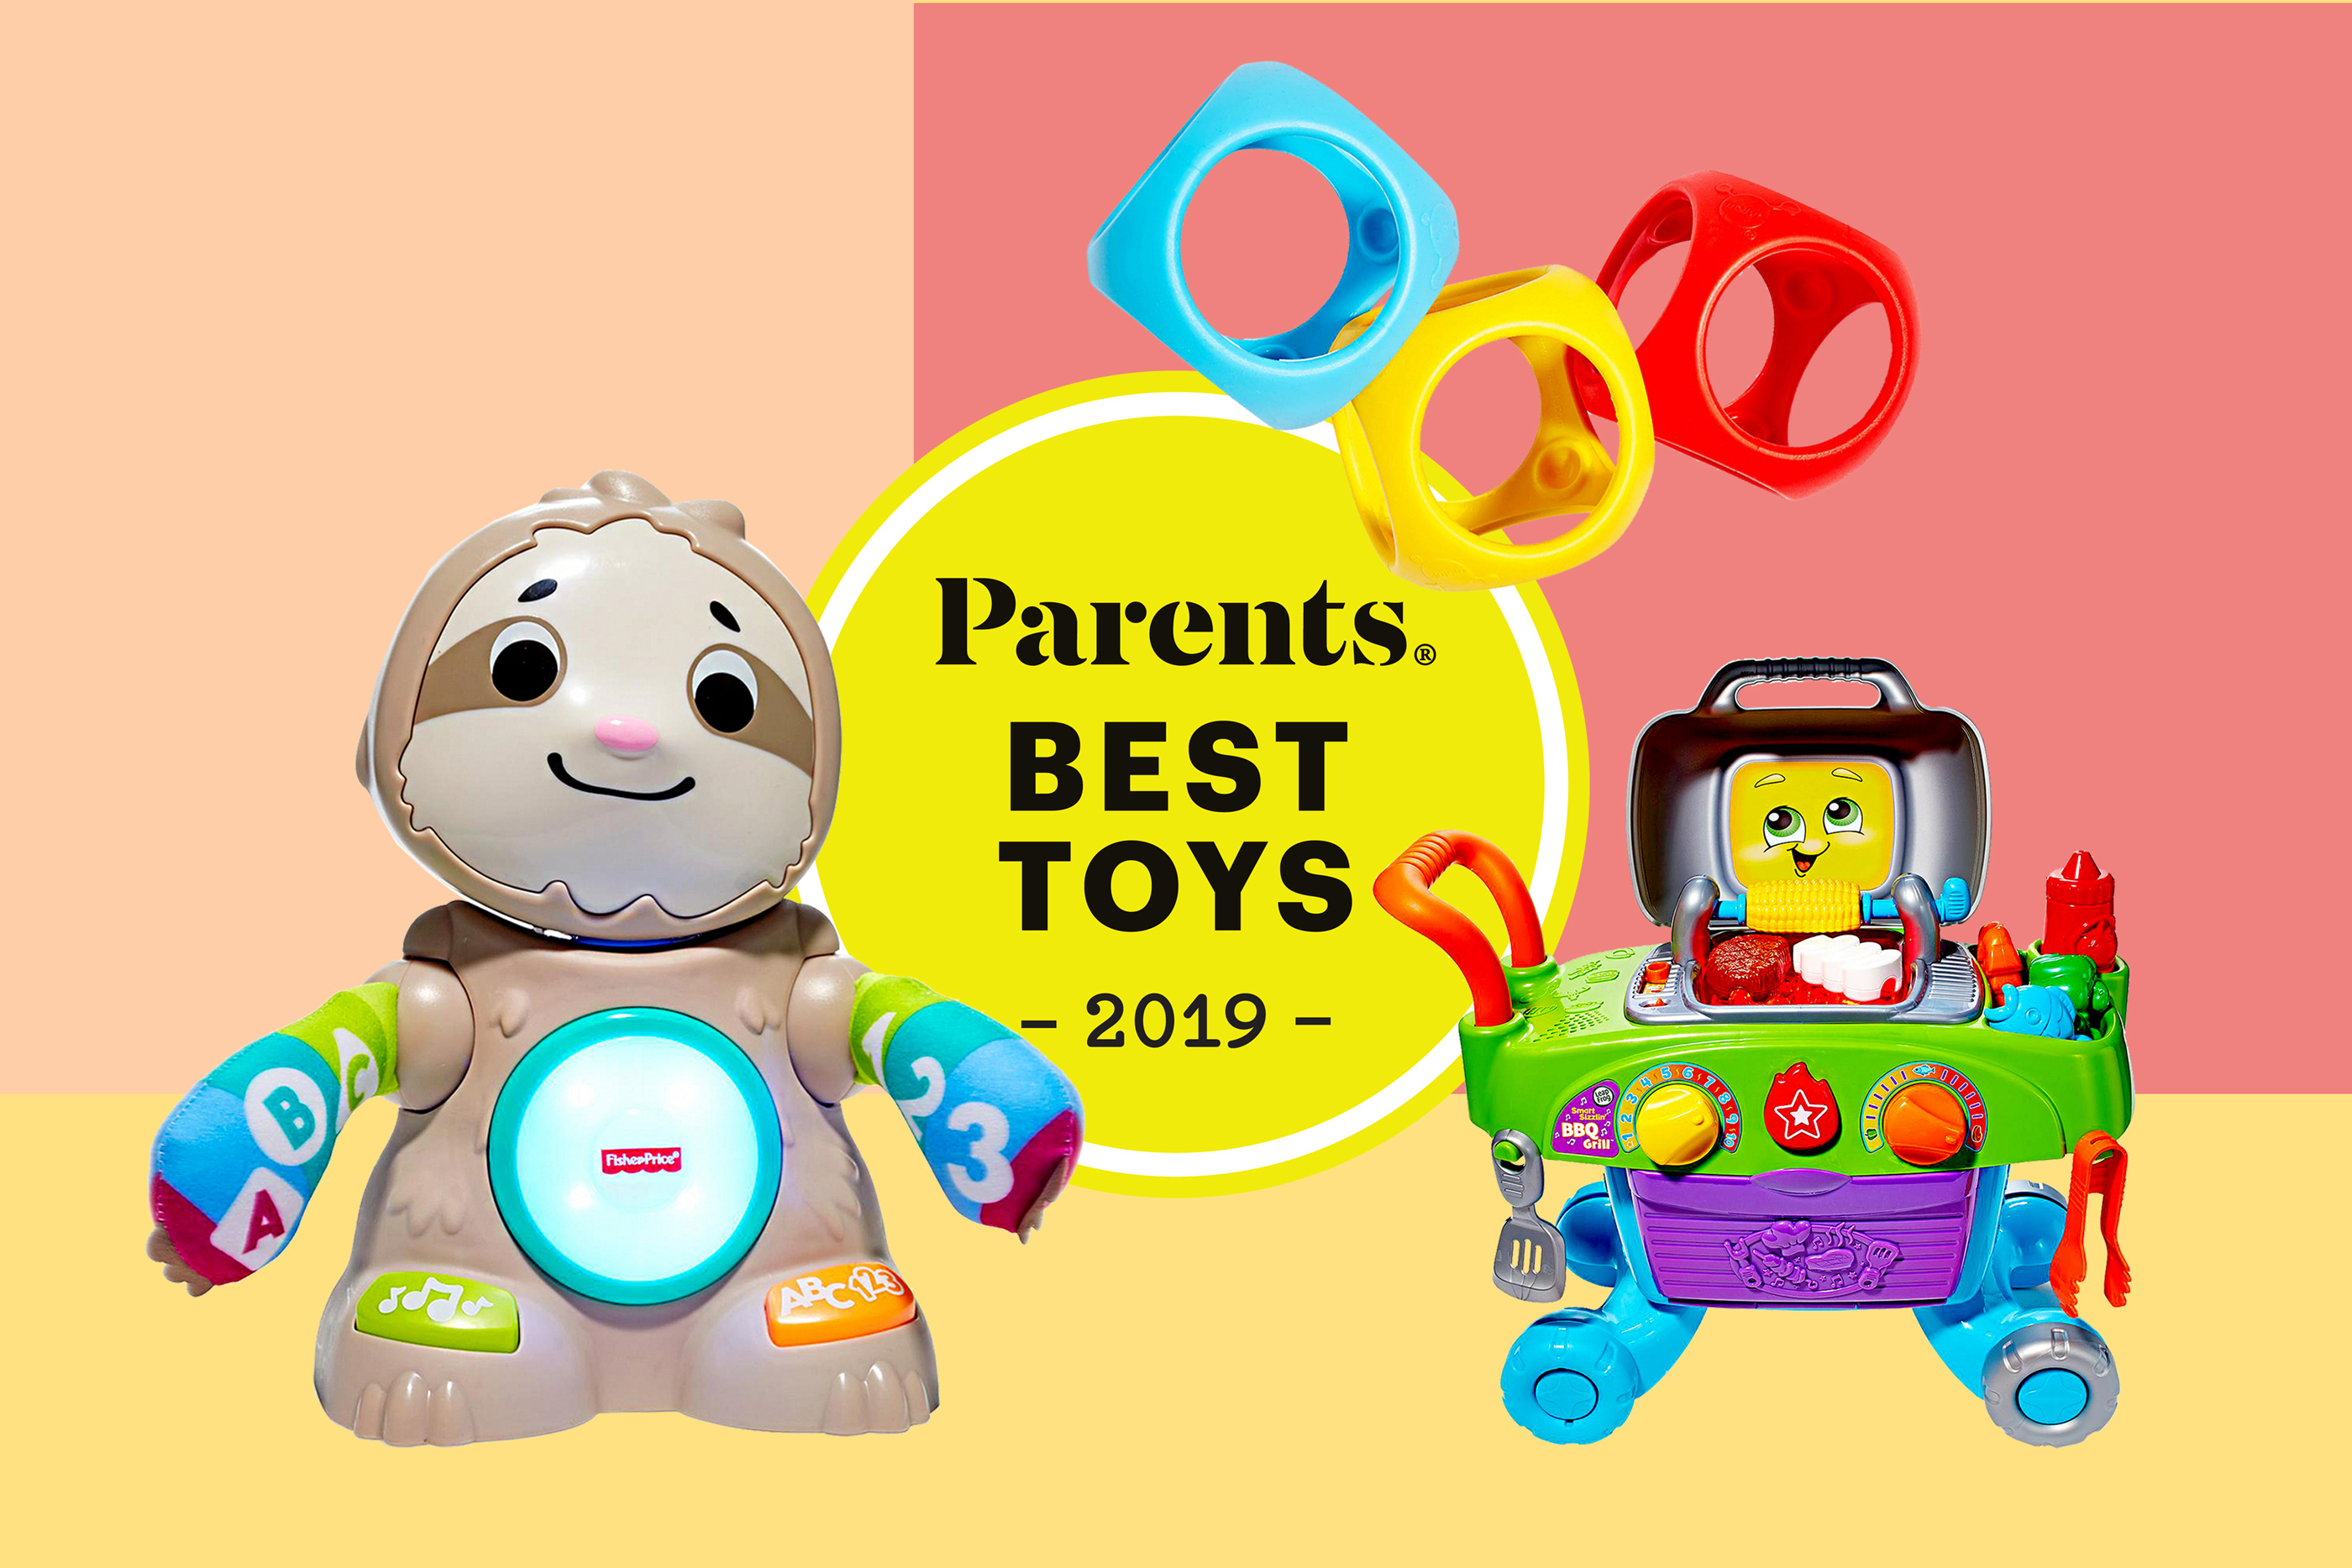 Best Baby and Toddler Toys - badge